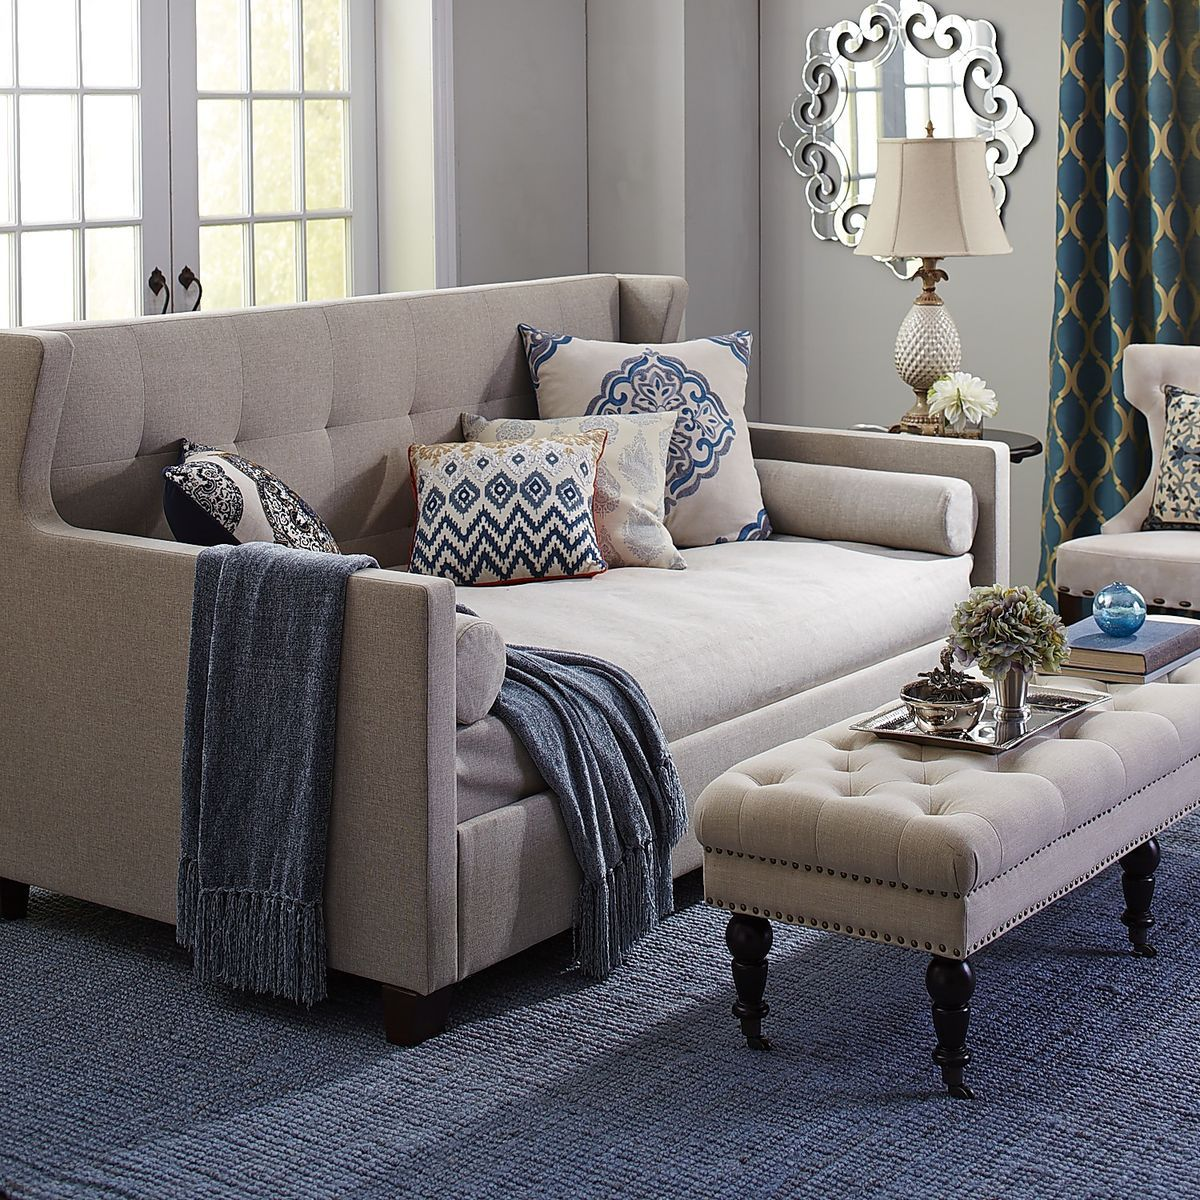 Awesome Hester Lift Up Daybed Pier 1 Imports 82 25W X 44 5D X Andrewgaddart Wooden Chair Designs For Living Room Andrewgaddartcom